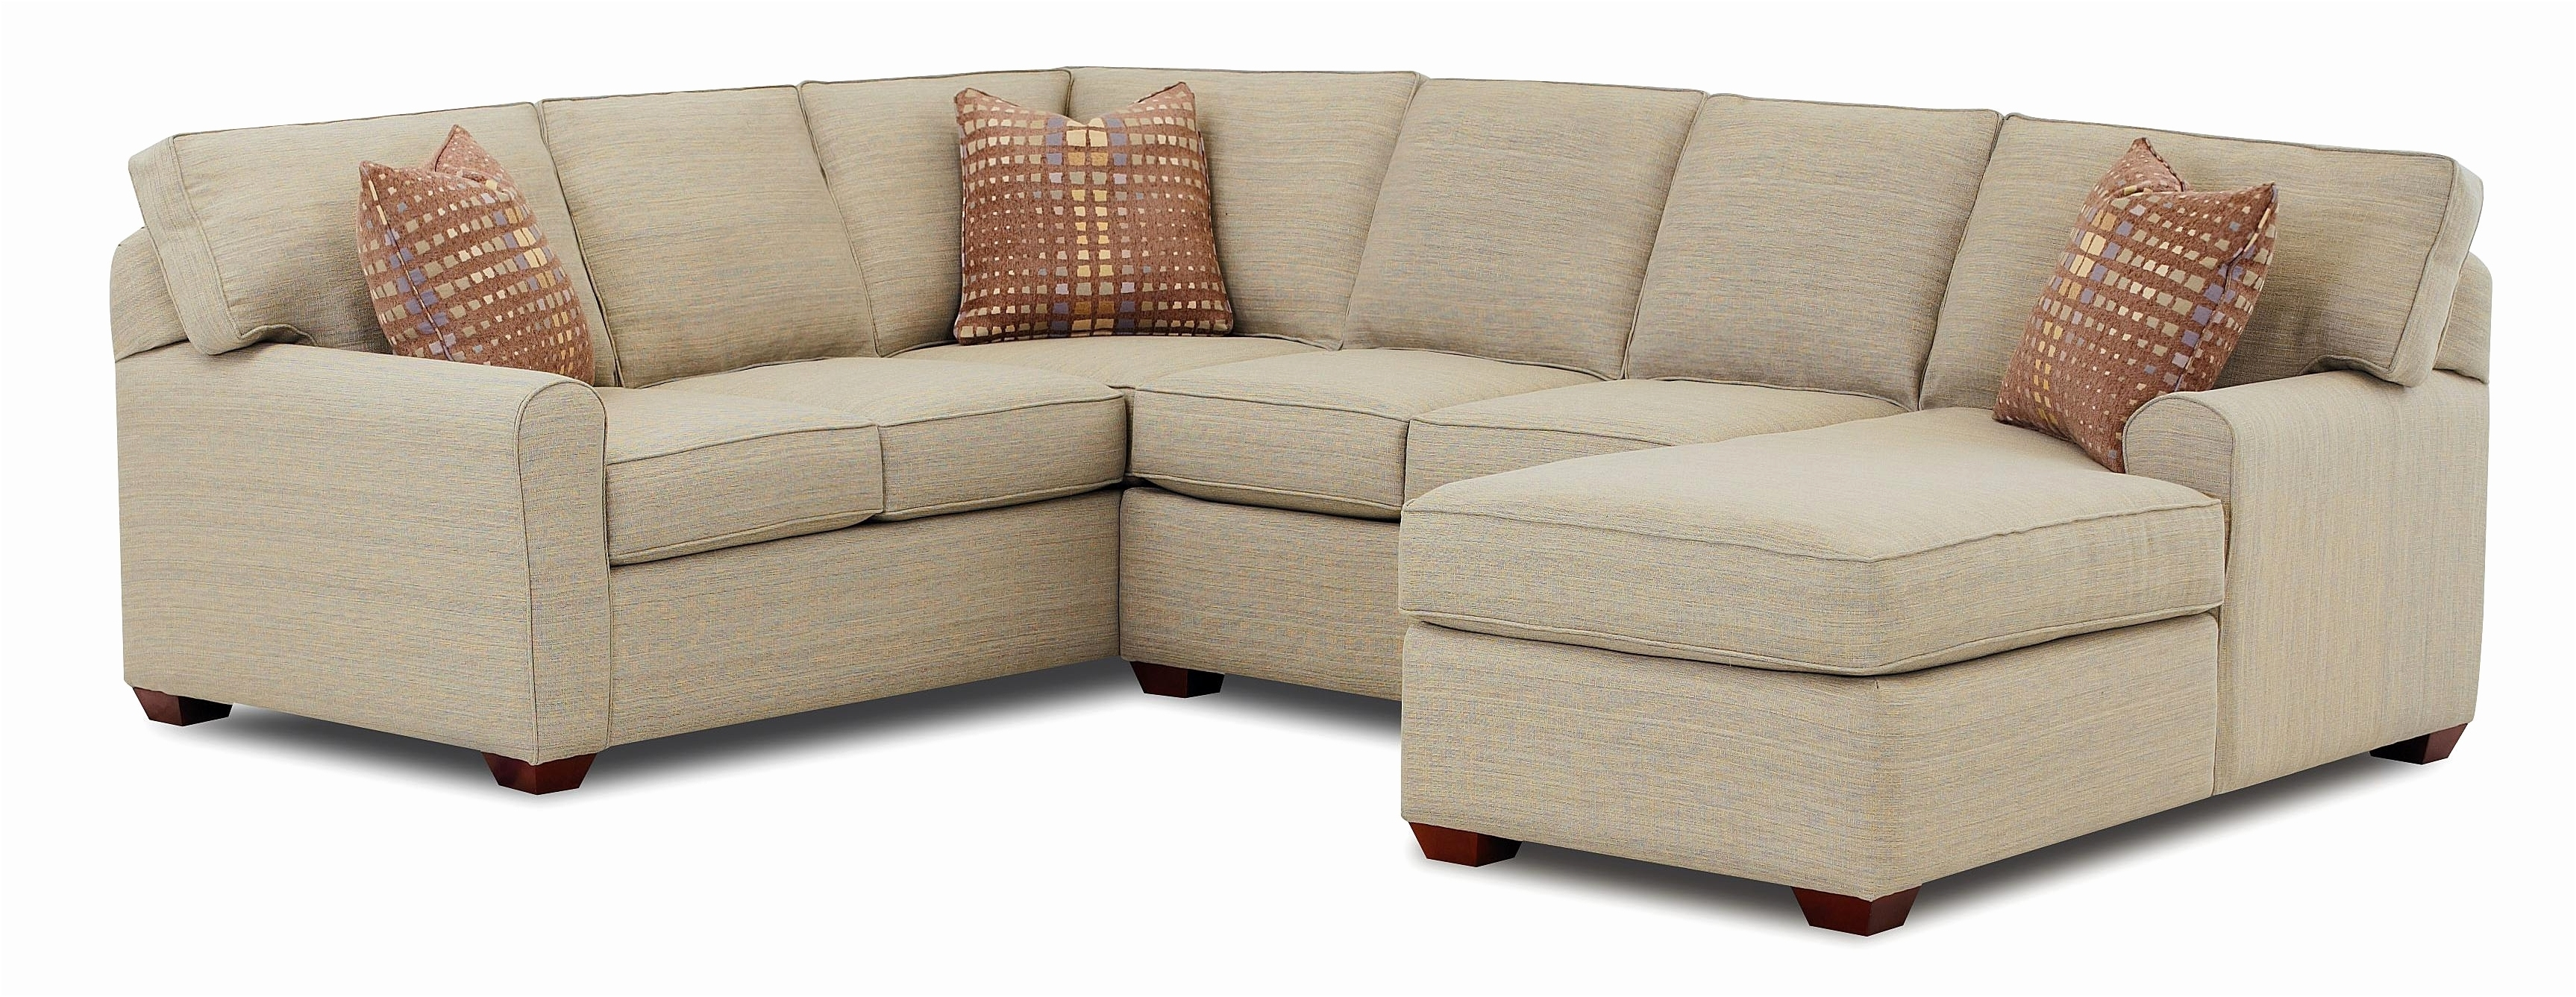 Chaise Sectional Sofas Within Widely Used Lovely Chaise Sectional Sofa Beautiful – Sofa Furnitures (View 11 of 15)